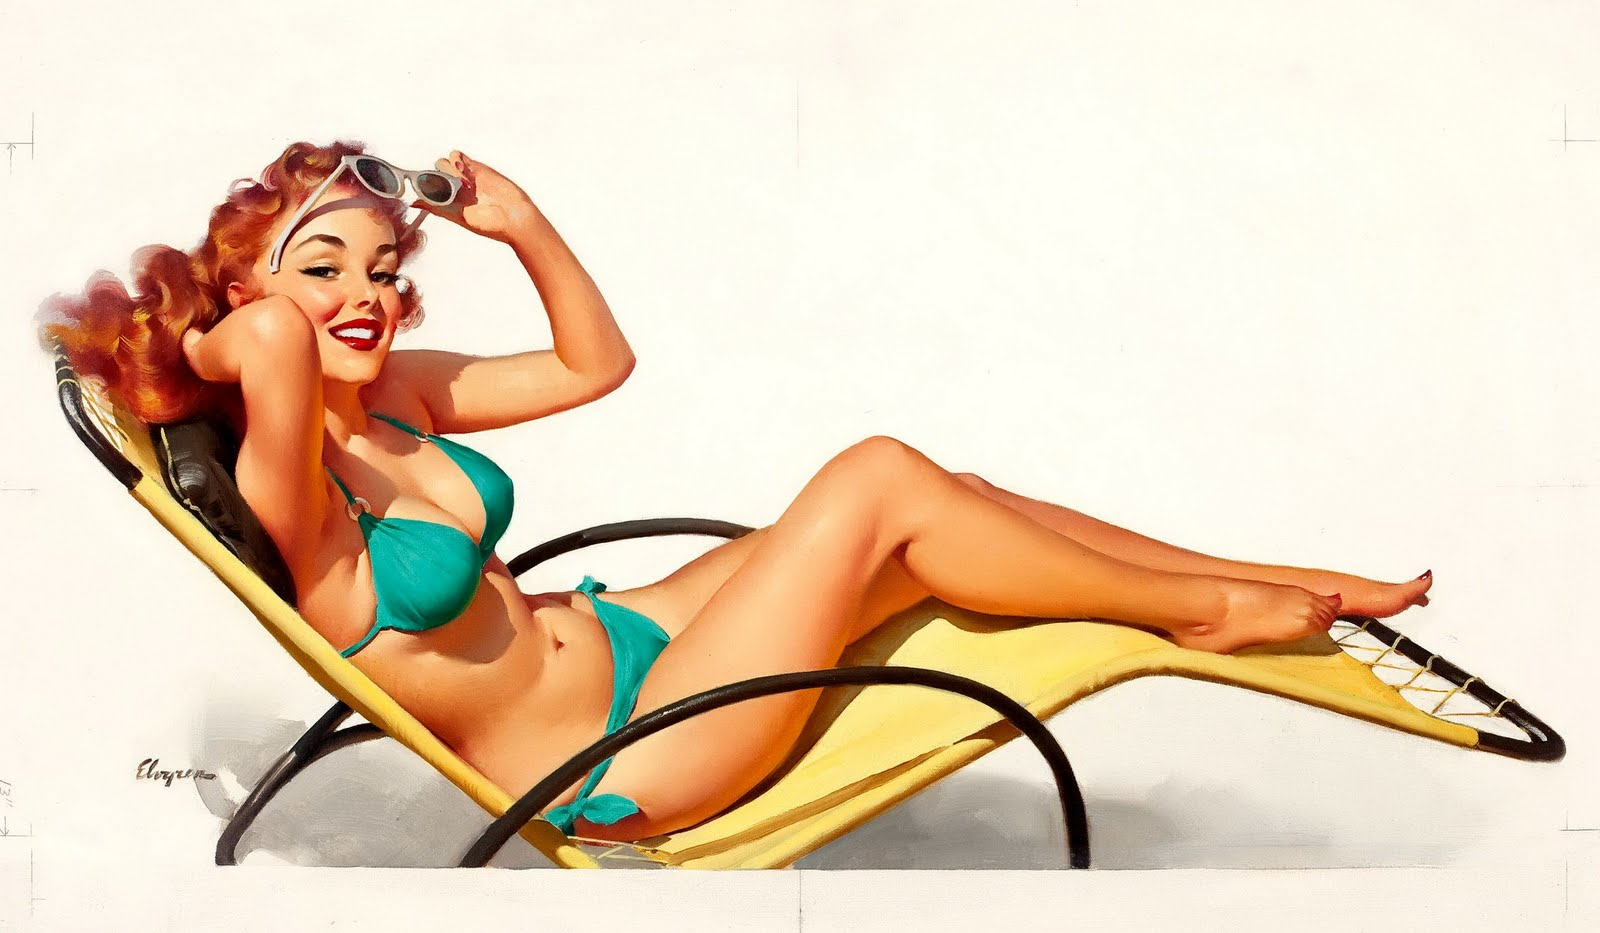 vintage beach pin up girl nude